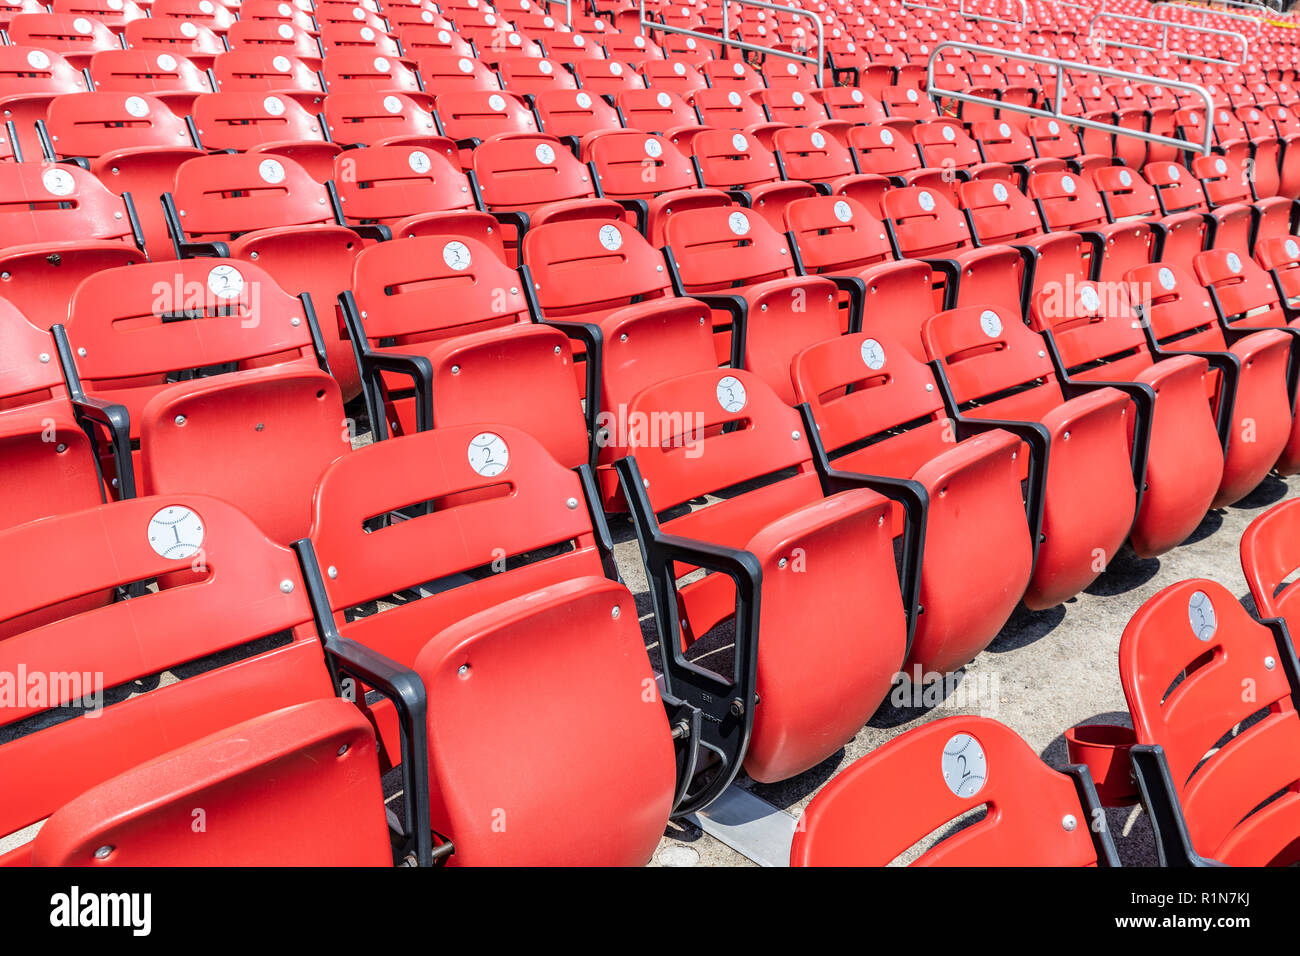 Rows of empty red bleacher seats in a stadium with numbers inside of baseball looking stickers. - Stock Image